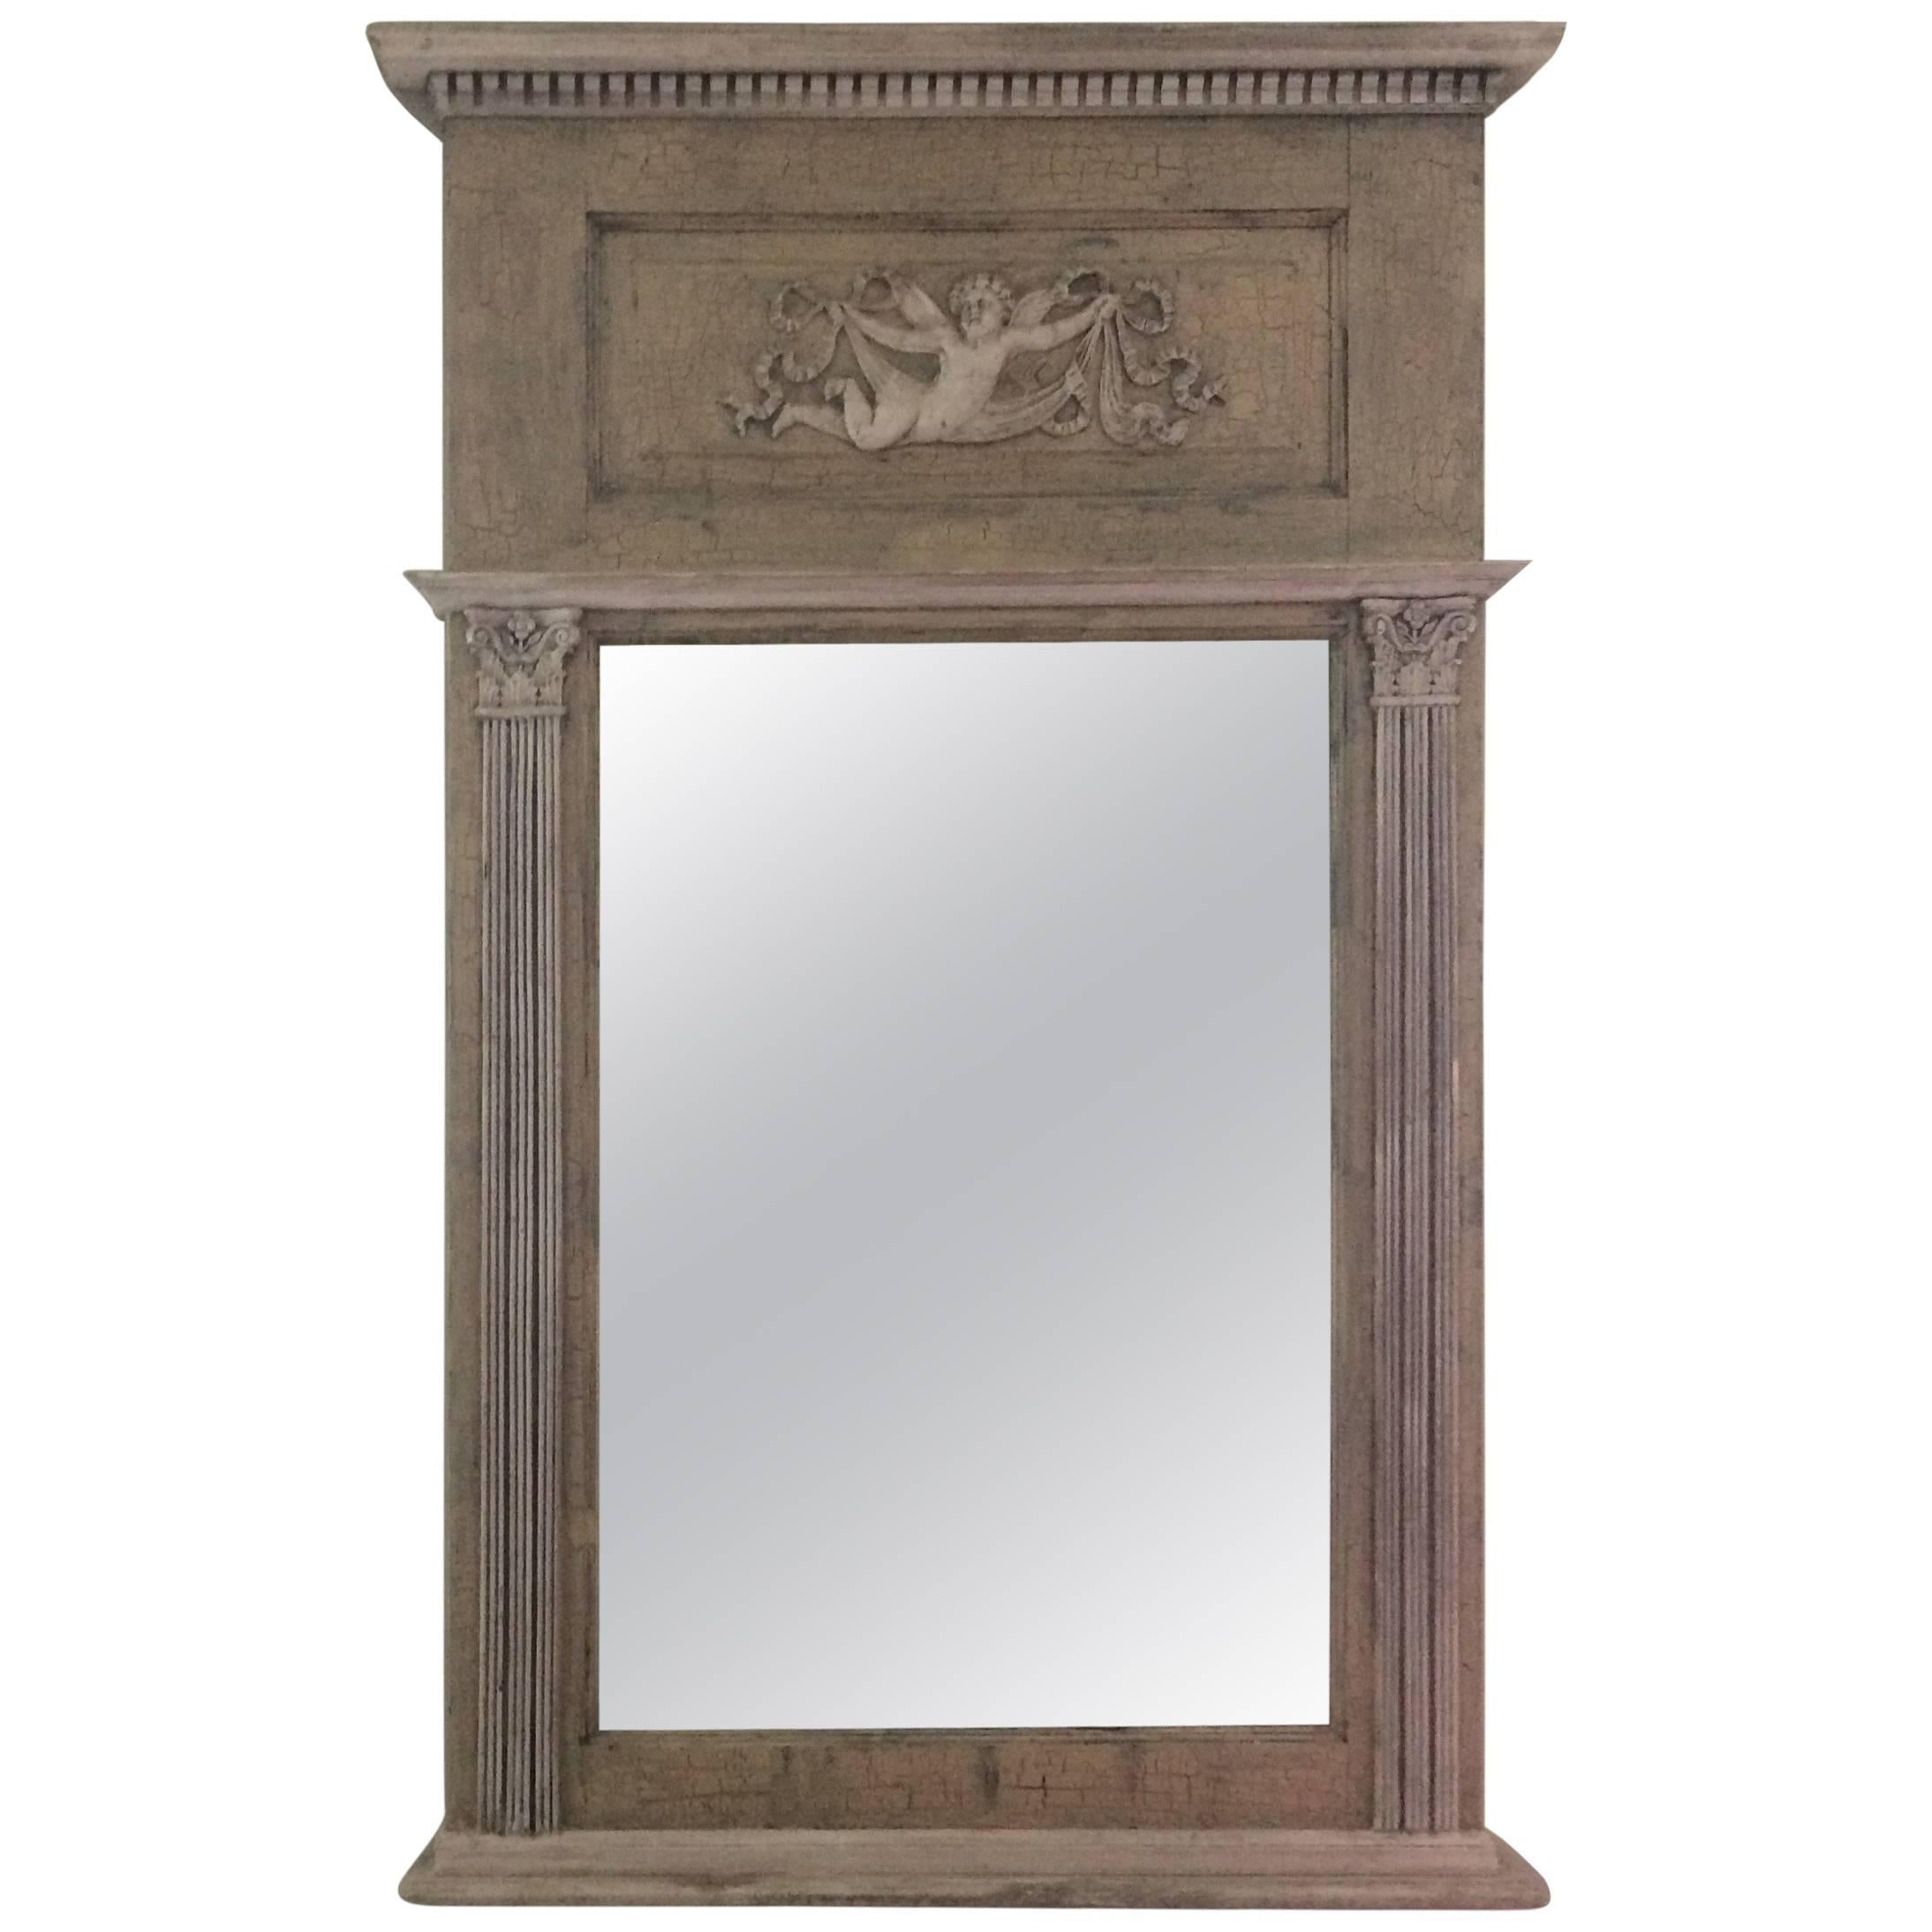 Henry Ii French Neo Renaissance Style Mirror Large Size For Sale